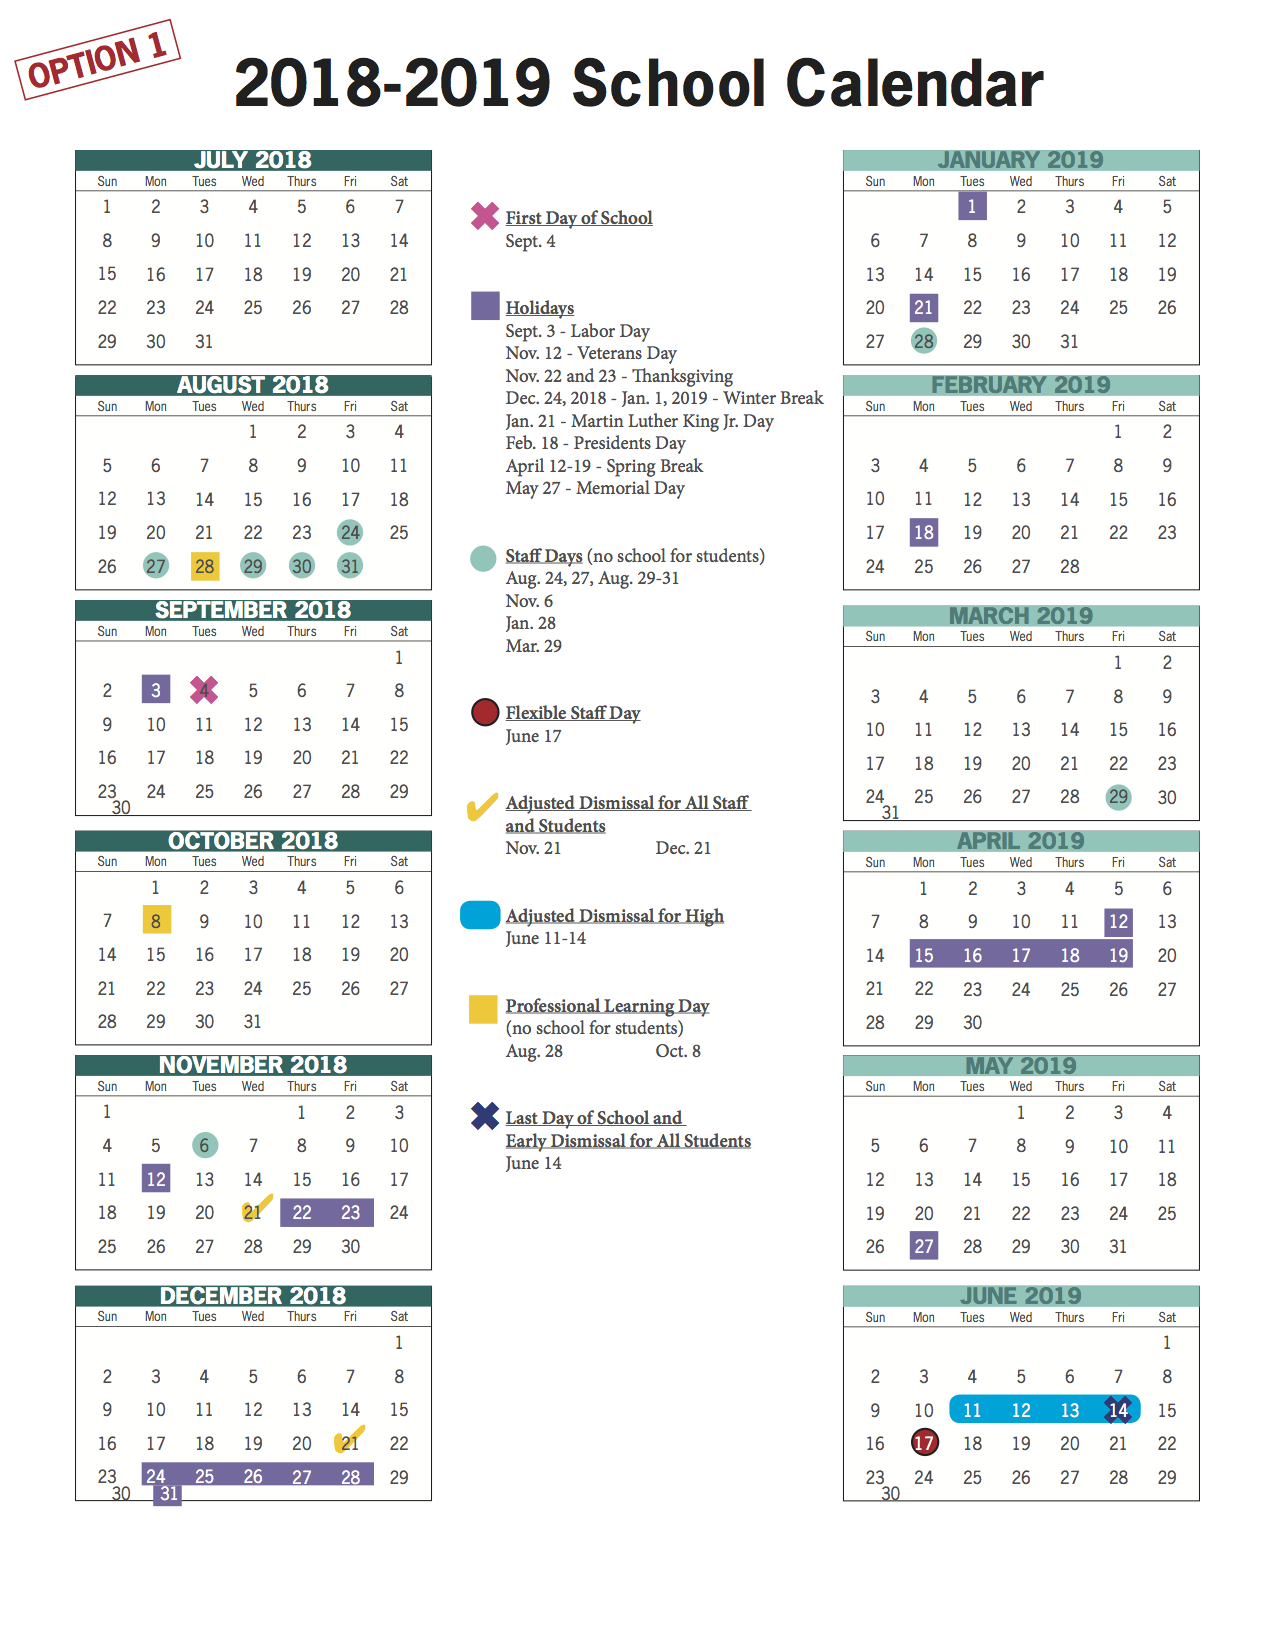 2020 Calendar Please VBCPS E Town Hall   2018 2019 and 2019 2020 School Calendar Review